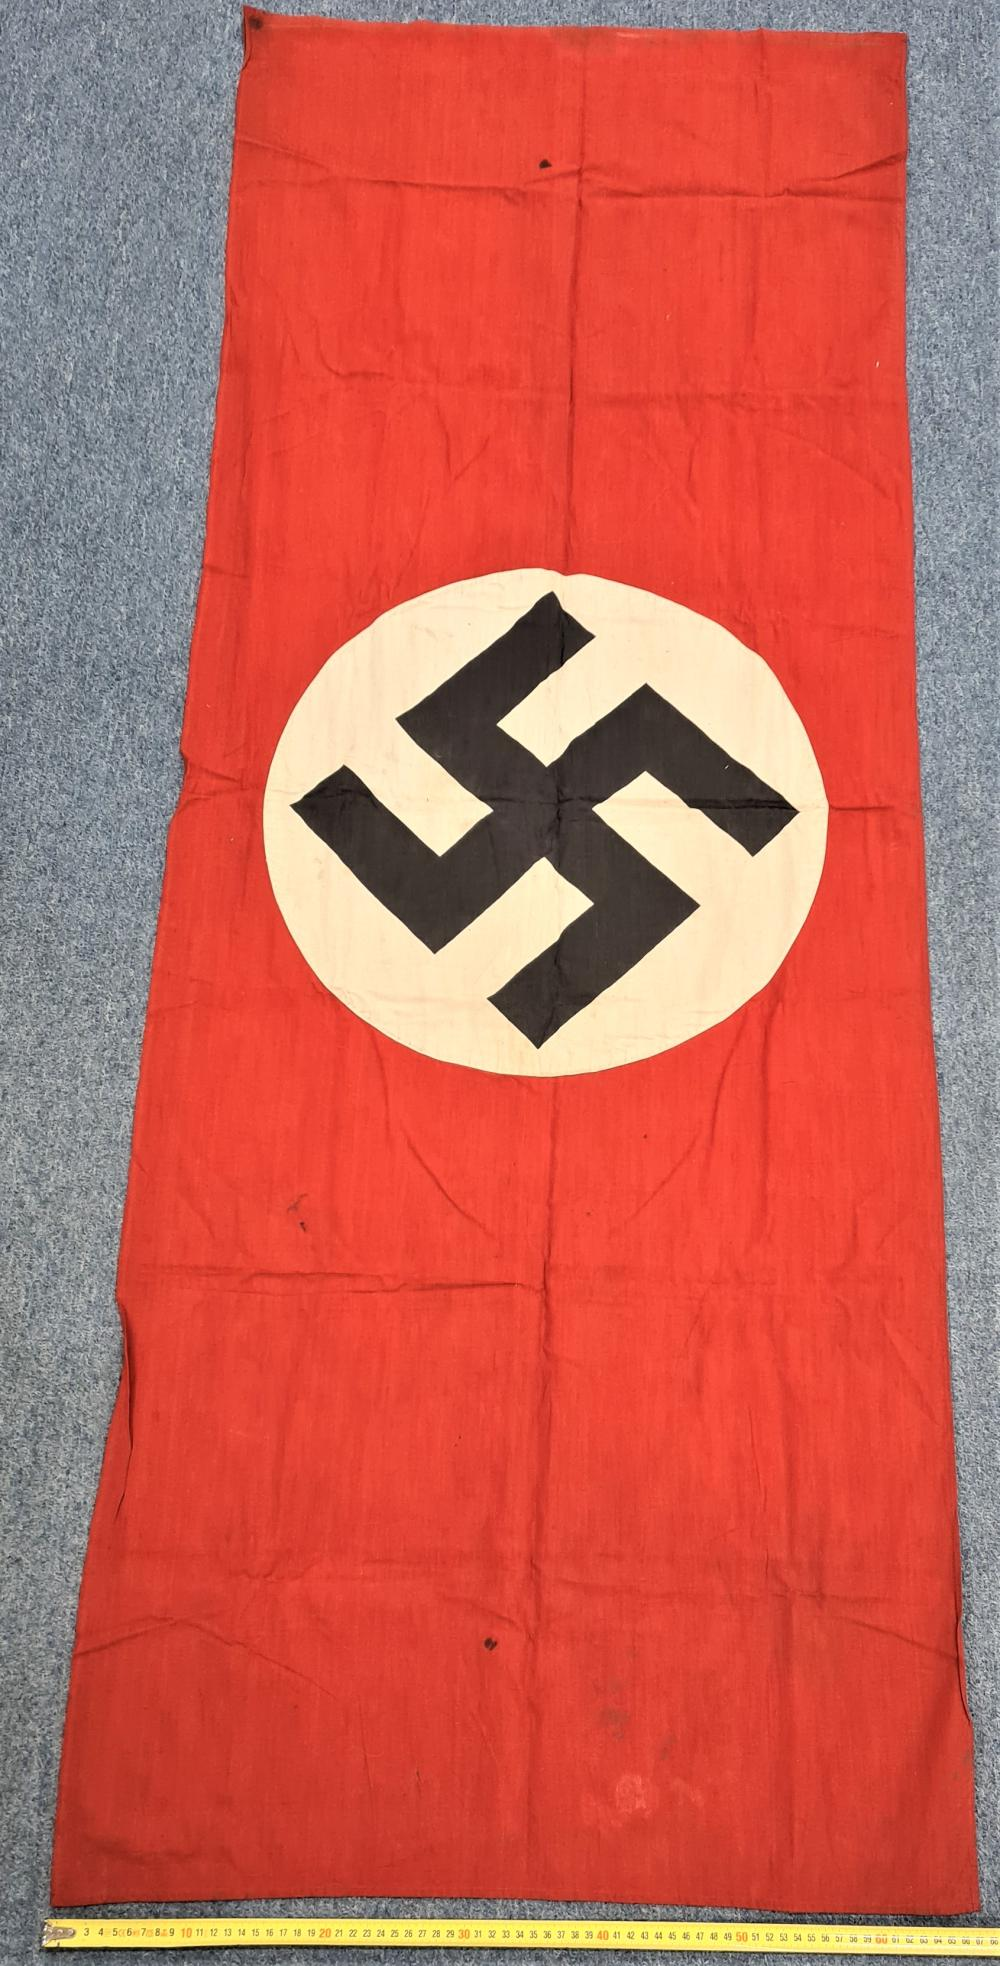 WW2 Germany Nazi party flag/banner